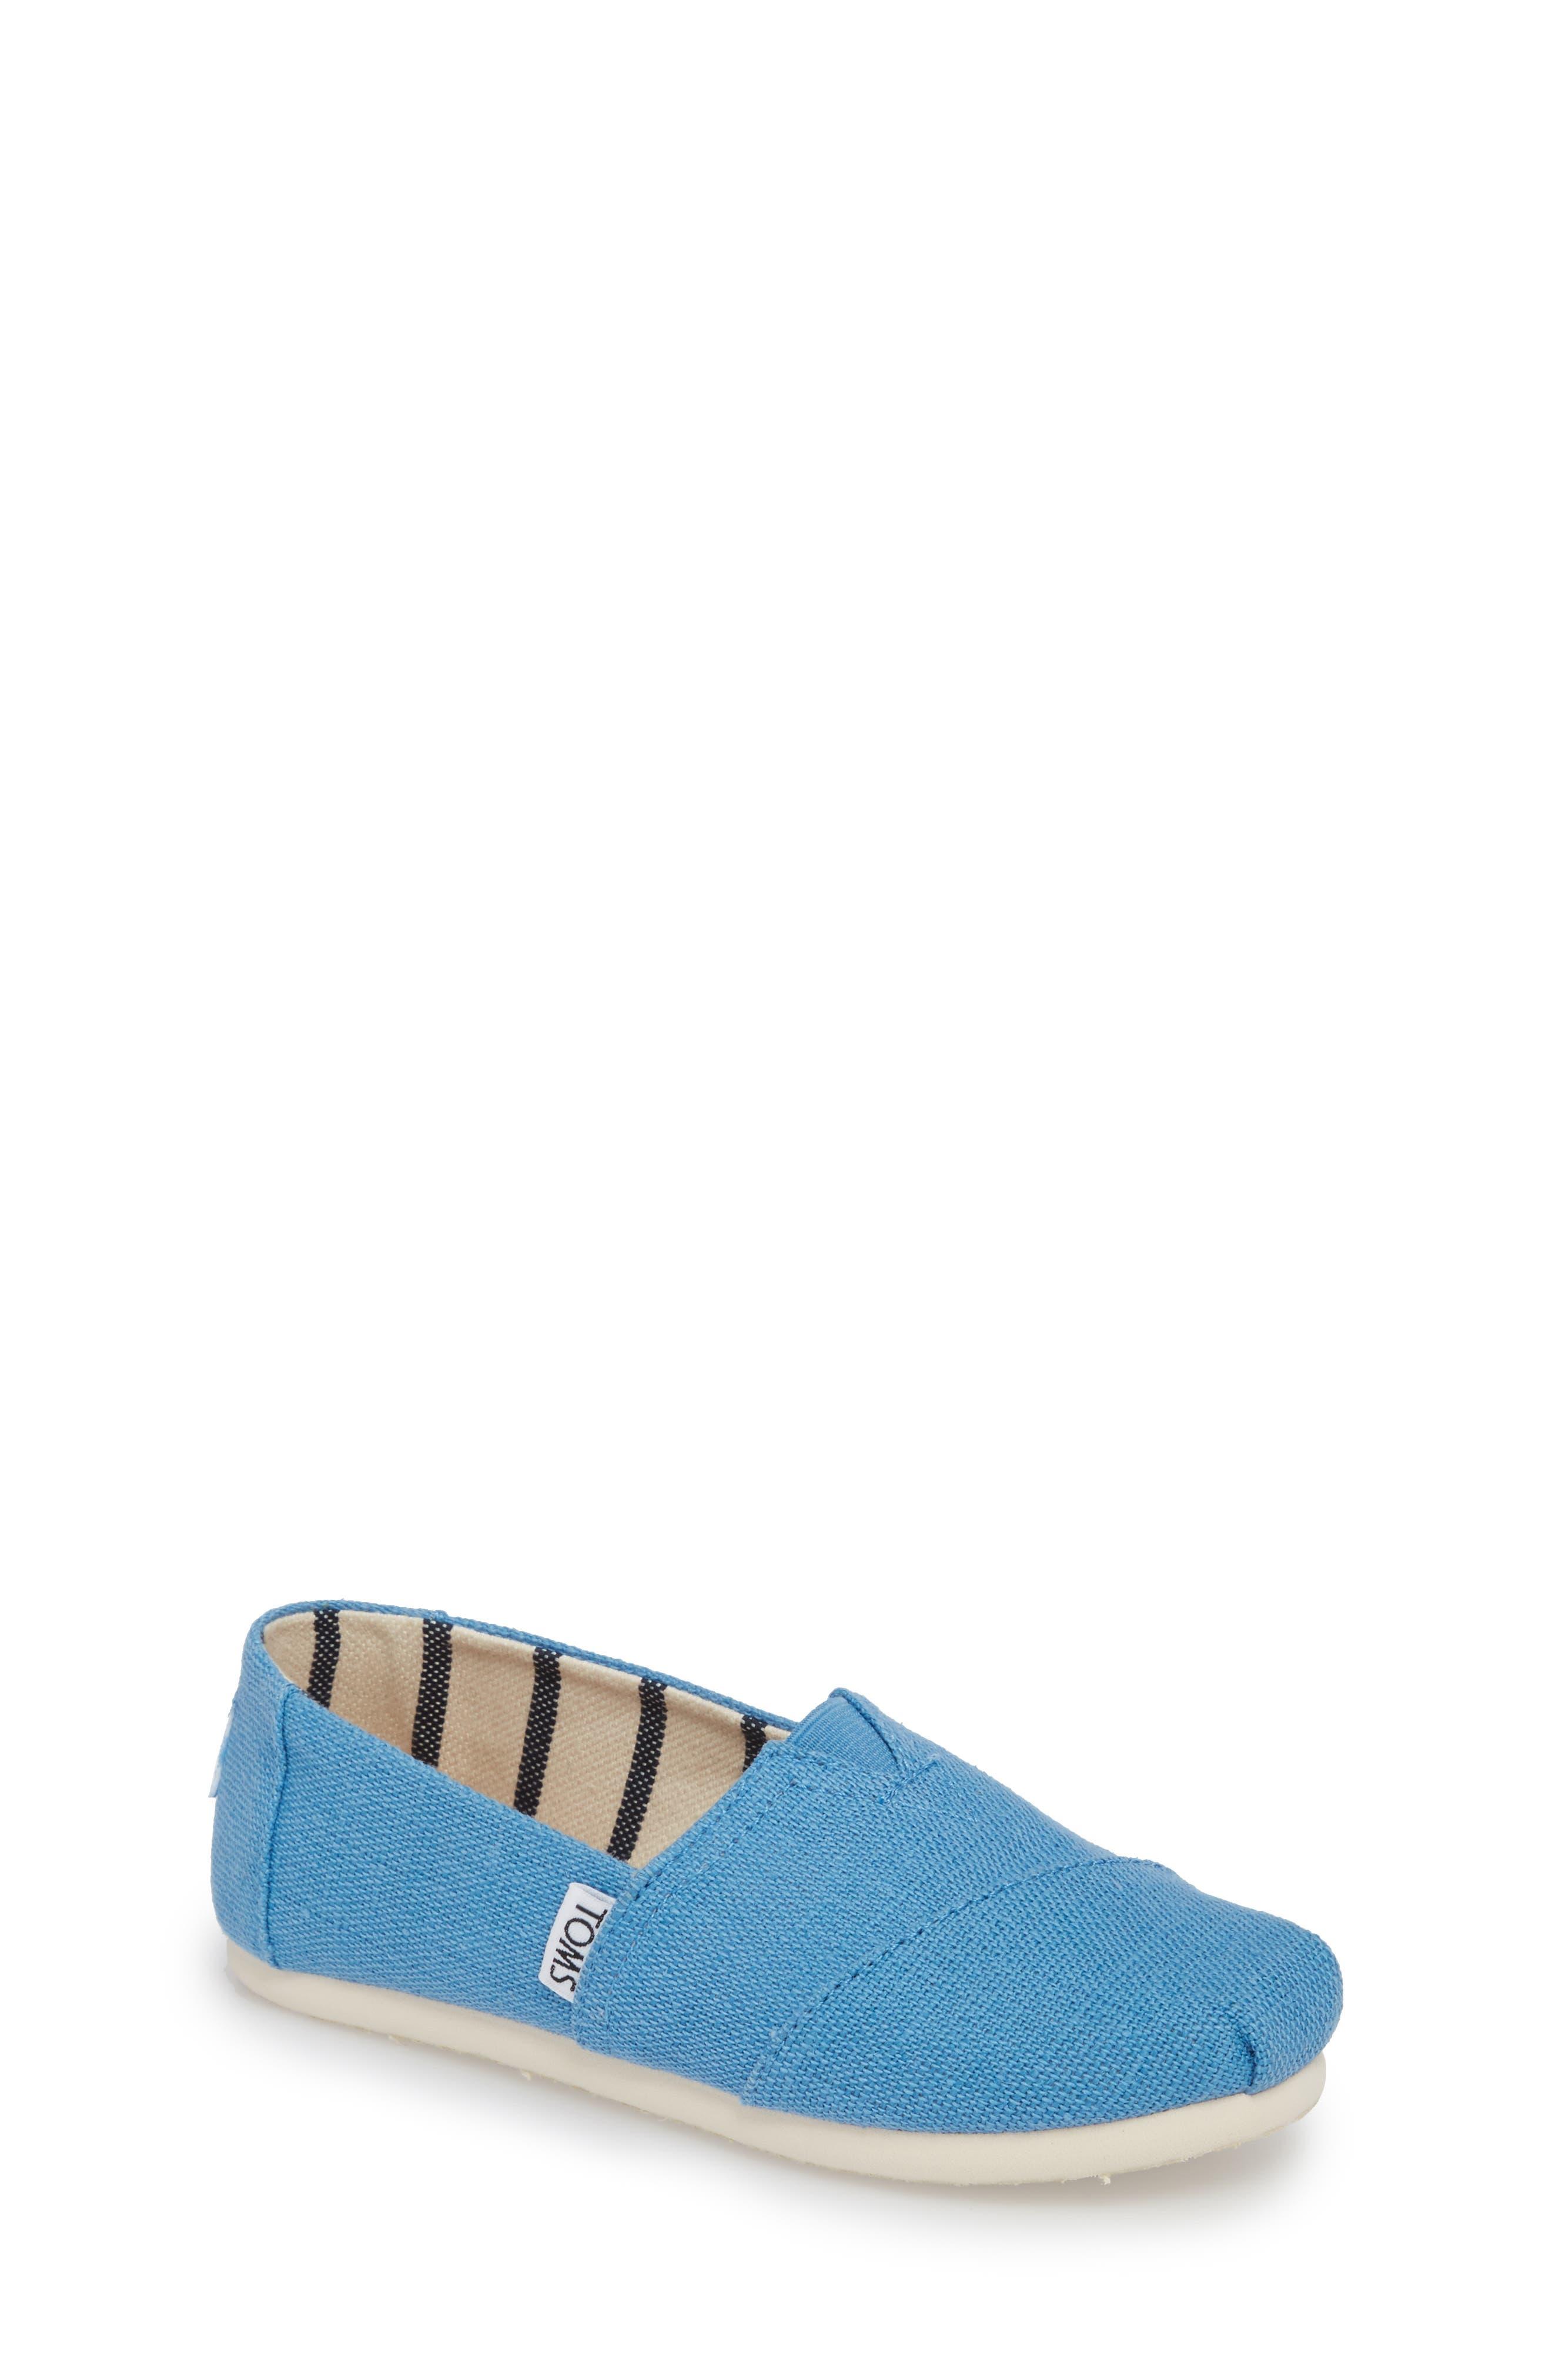 TOMS Classic Print Slip-On, Main, color, 420